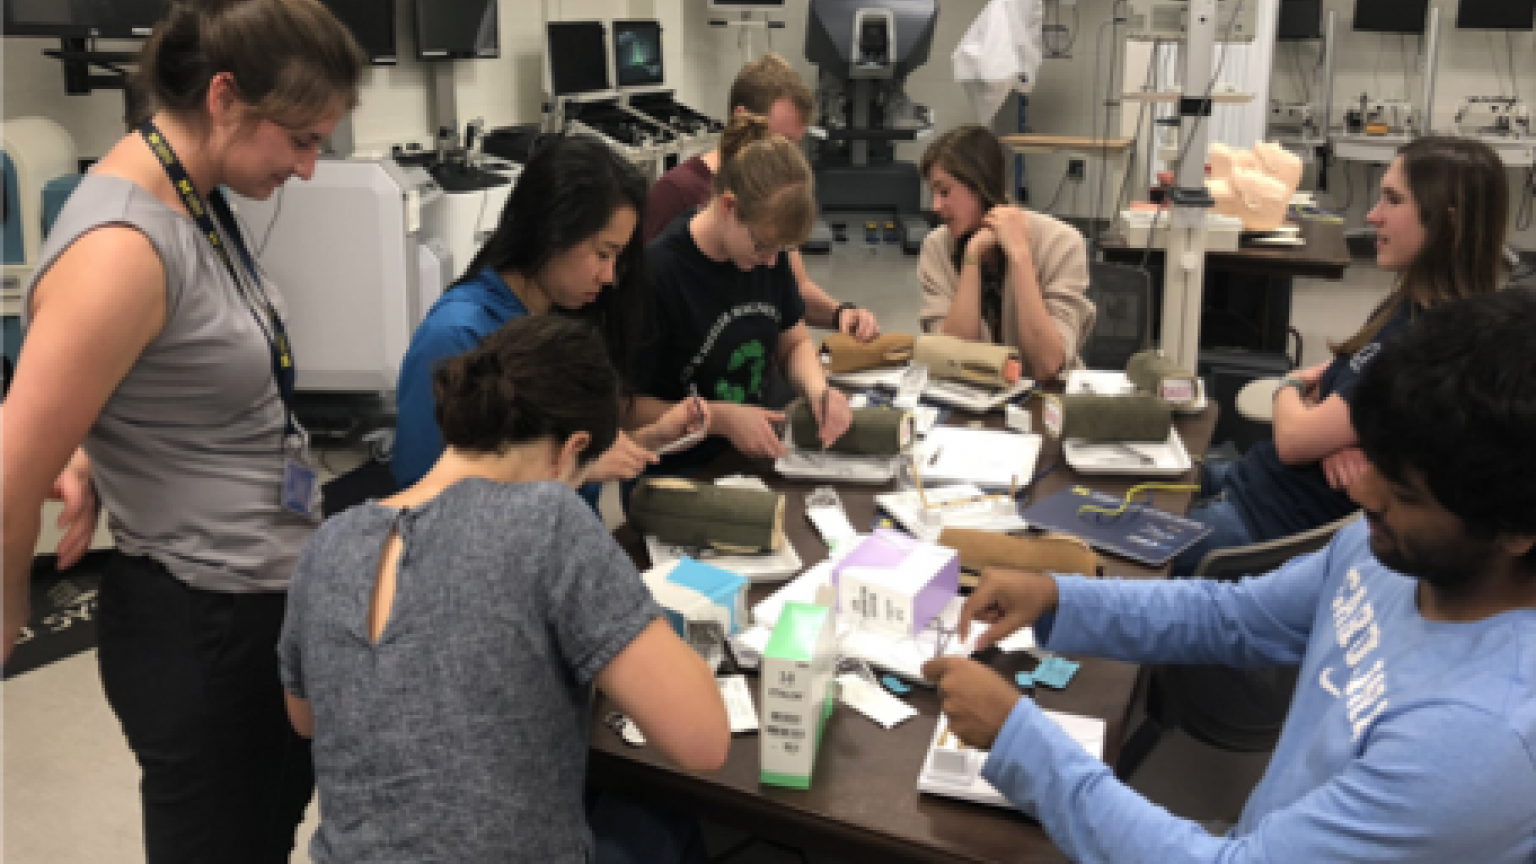 Students at table practicing surgical techniques